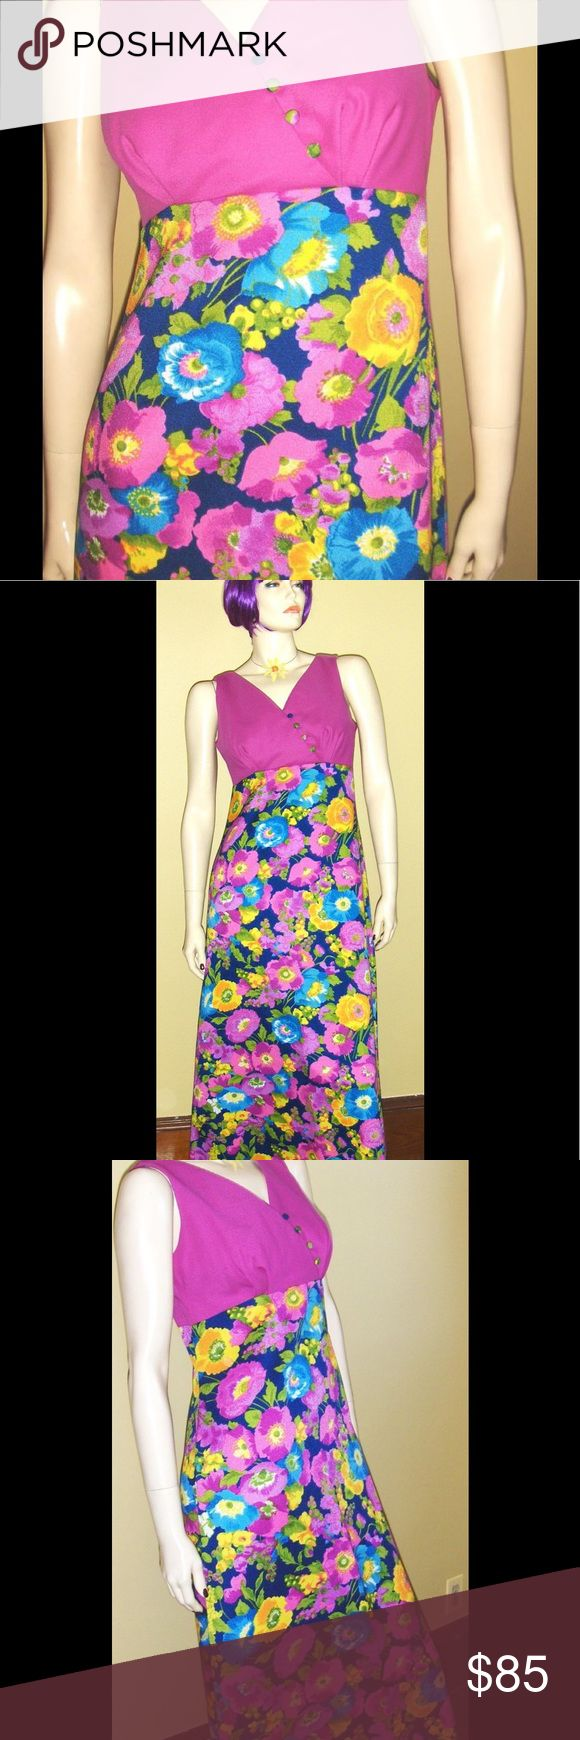 "VTG ALOHA MOD 60s LUDIS Hawaii Floral Maxi Dress! Vintage late 60s MOD Hawaiian floral maxi dress. V-Neck w/empire bodice & fabric covered buttons. Lined & shirred for shaping at Bust. Back zip. Full flairy maxi skirt with psychedelic flowers adds instant MOD appeal. Full sweep hem.  Size: 9/10  Bust: 34"" (or 36"" snug) Waist: 28-30""  Hips: 40"" Length: Approx. 55"" Label: LUDI'S WAIKIKI, HAWAII Material: Polyester  Color: Multi  Vintage condition: Excellent, perfect in every way. Dress appears…"